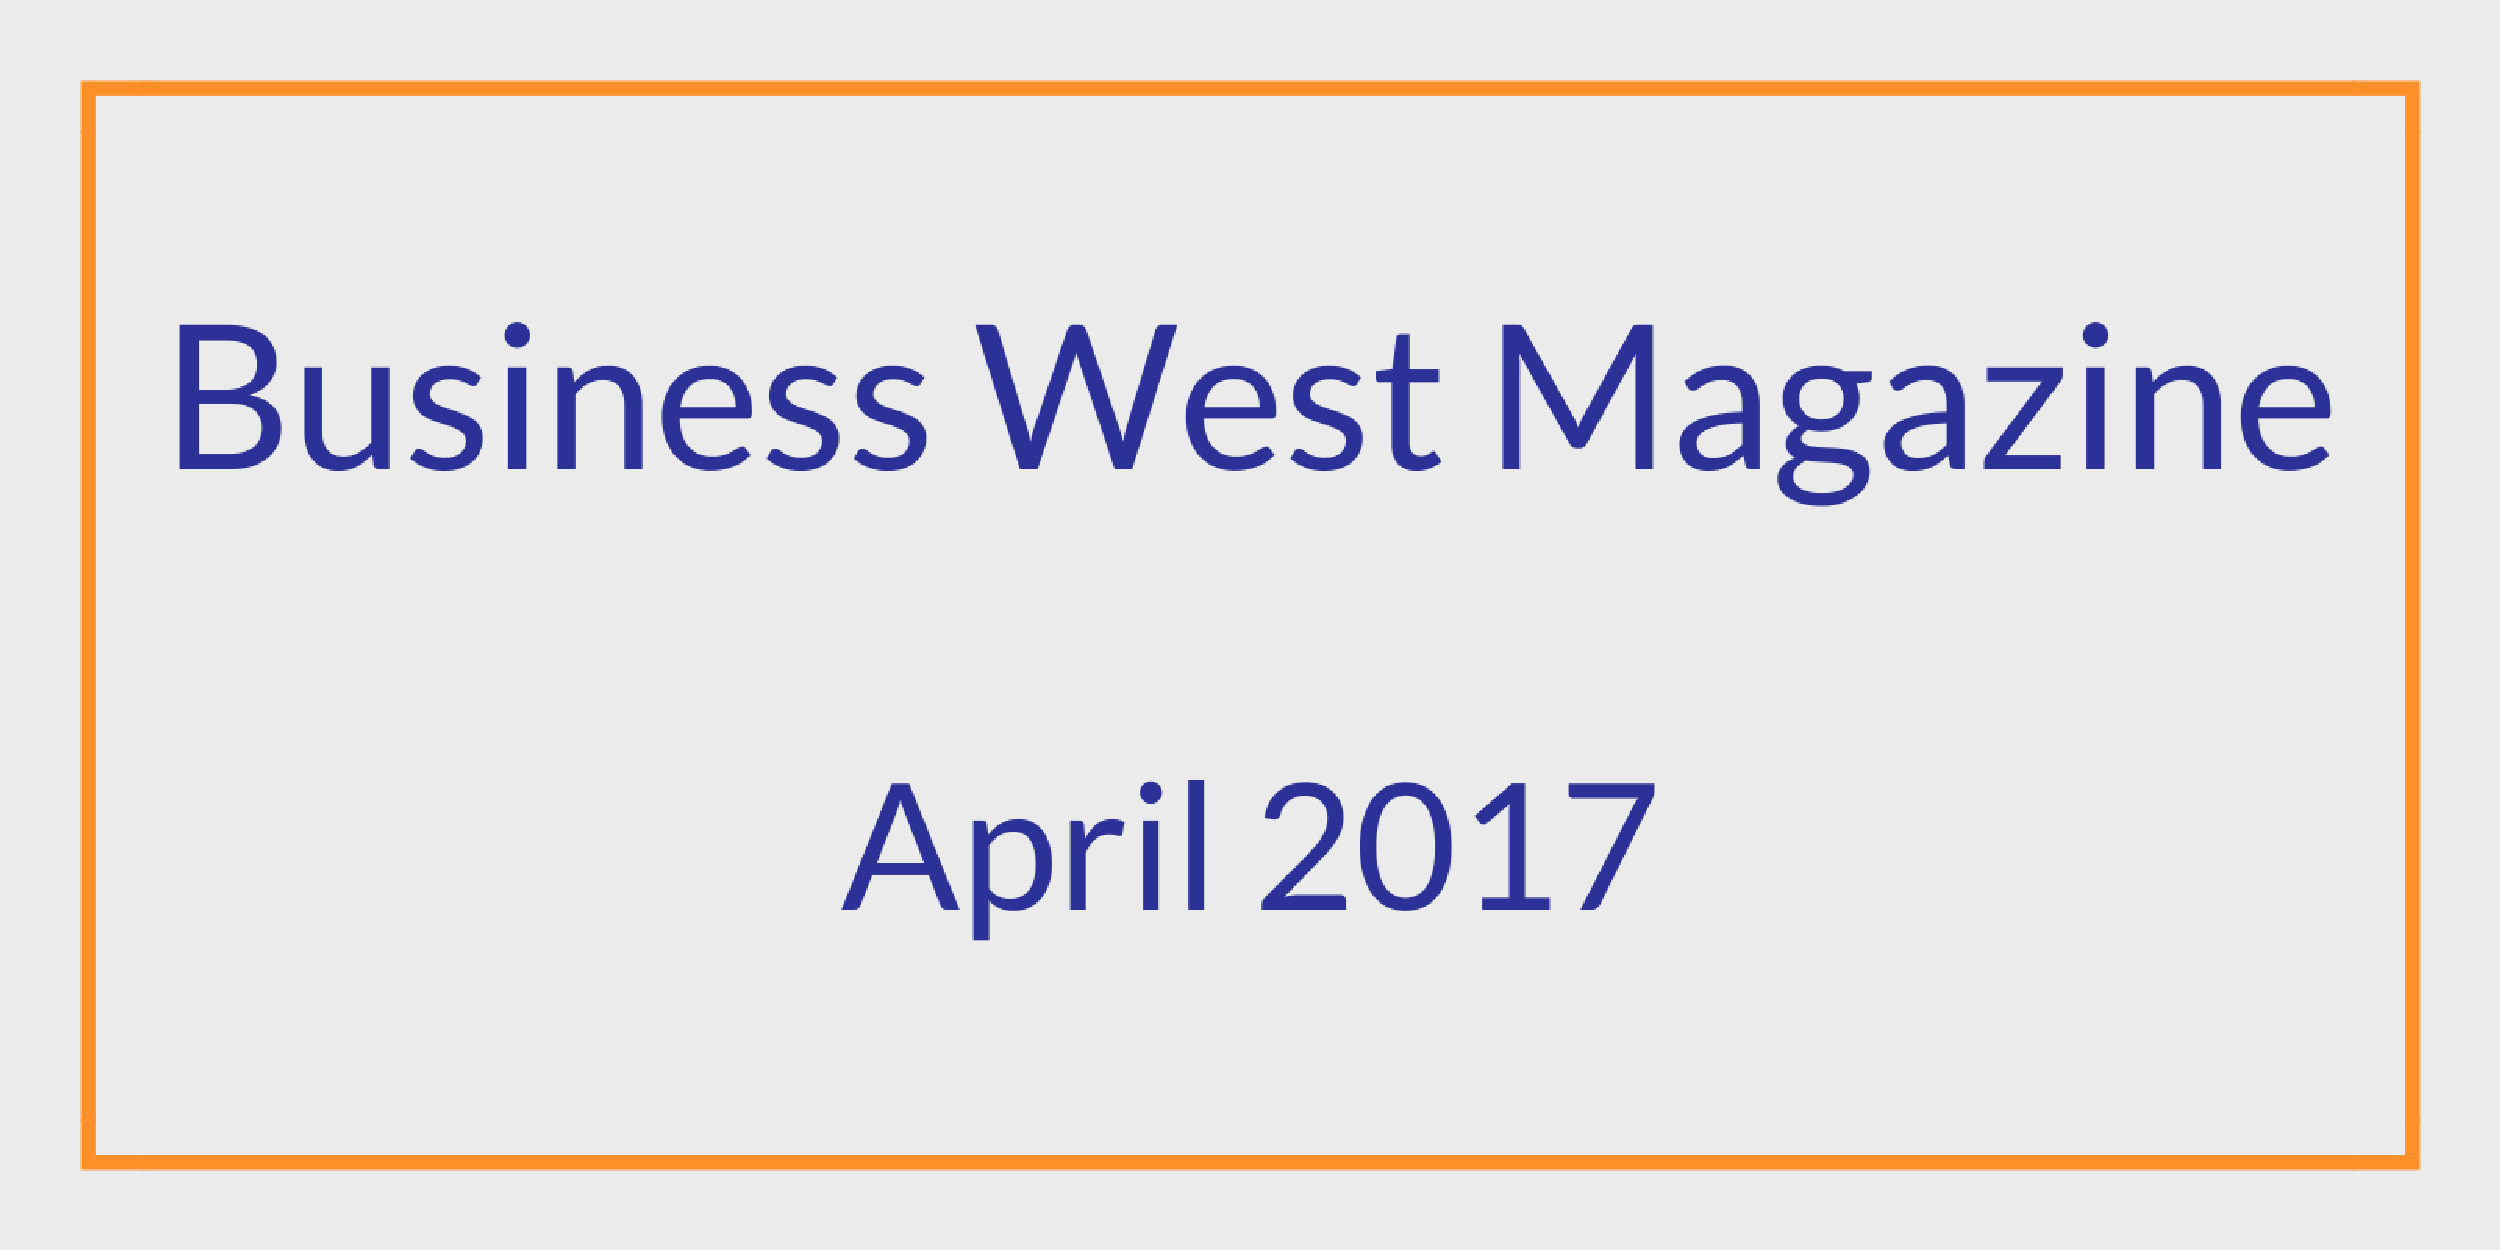 http://businesswest.com/blog/consultant-helps-clients-use-color-to-send-the-right-message/